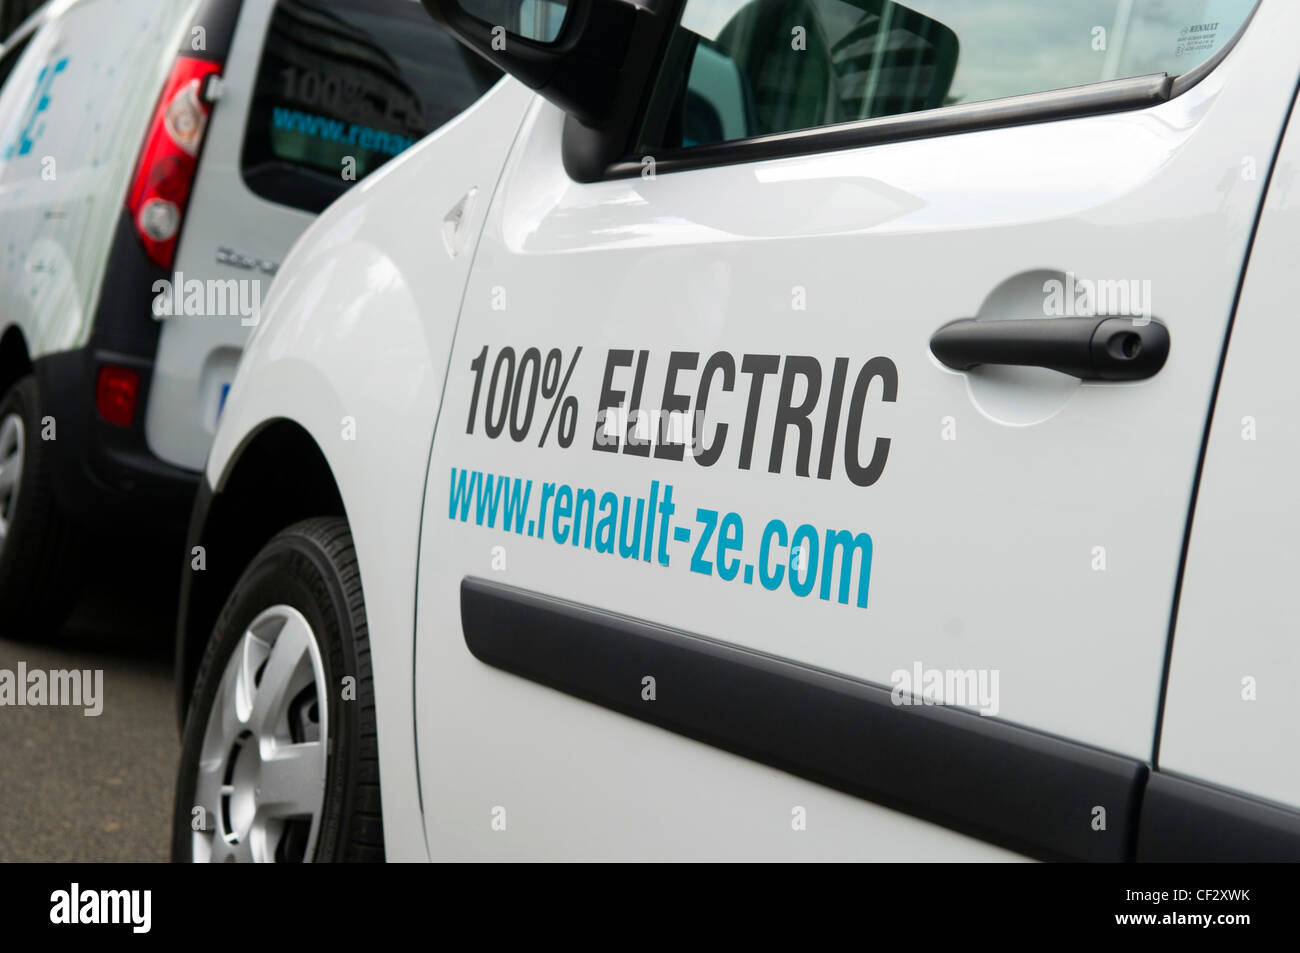 Electric vehicles - Stock Image